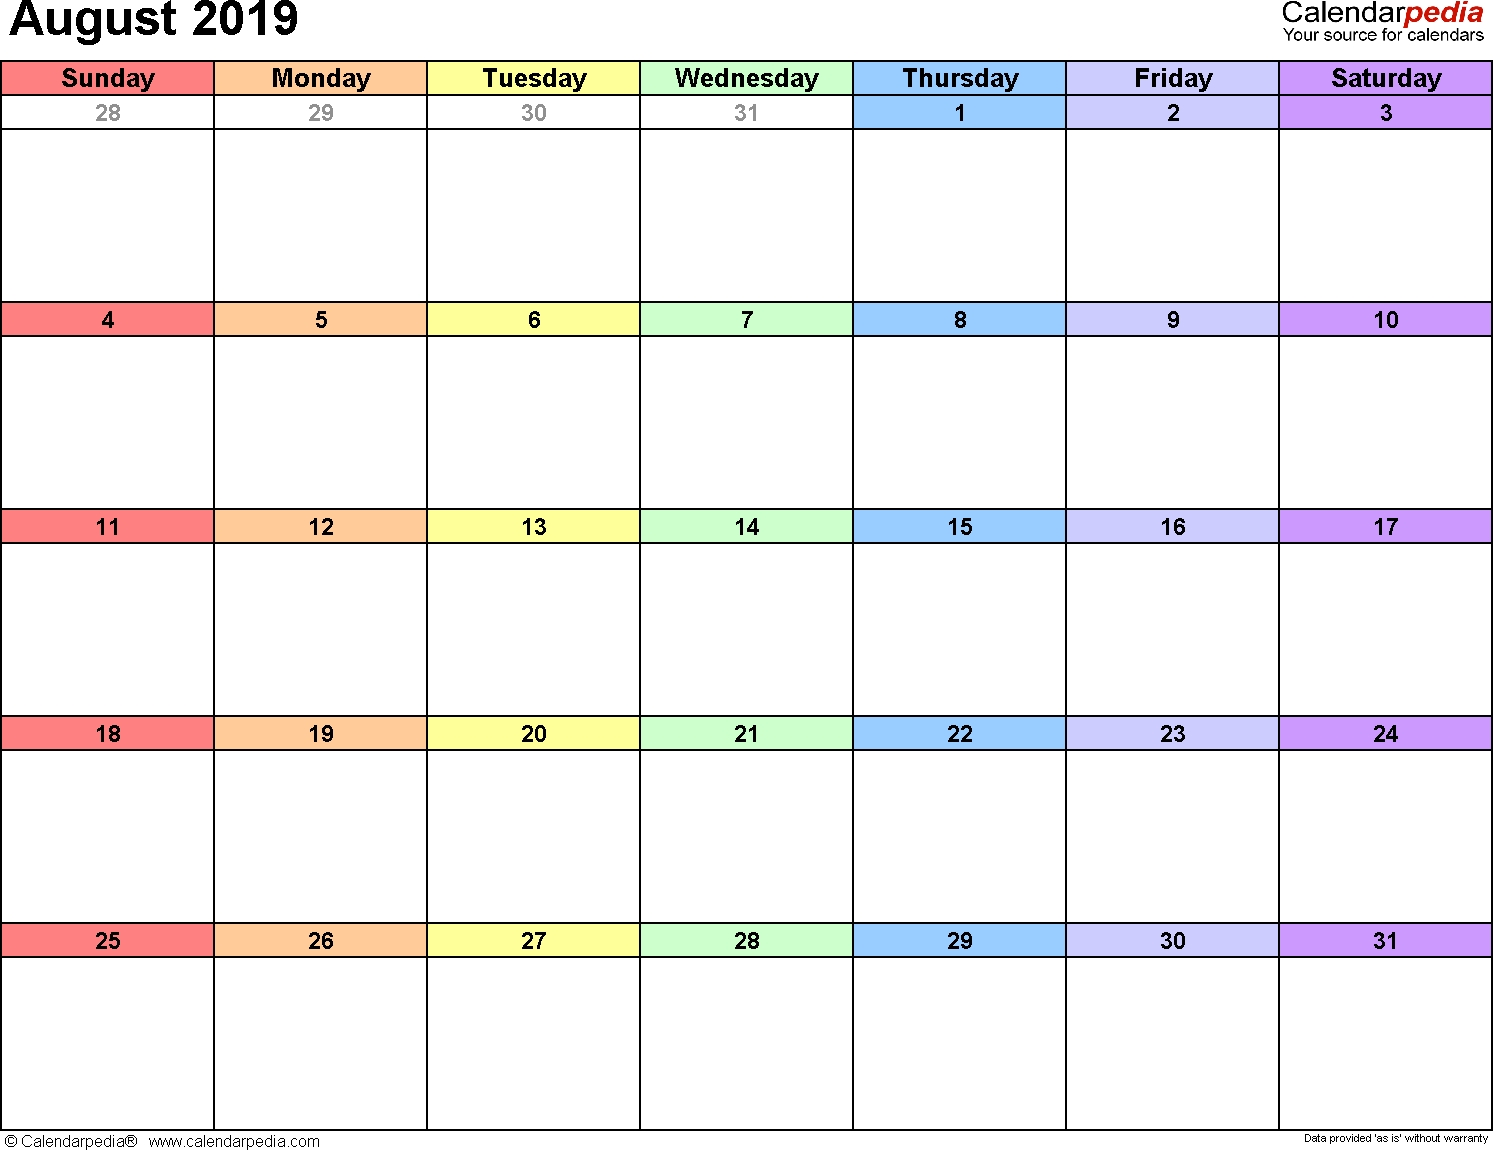 Calendarpedia - Your Source For Calendars_School Calendar Malta 2020